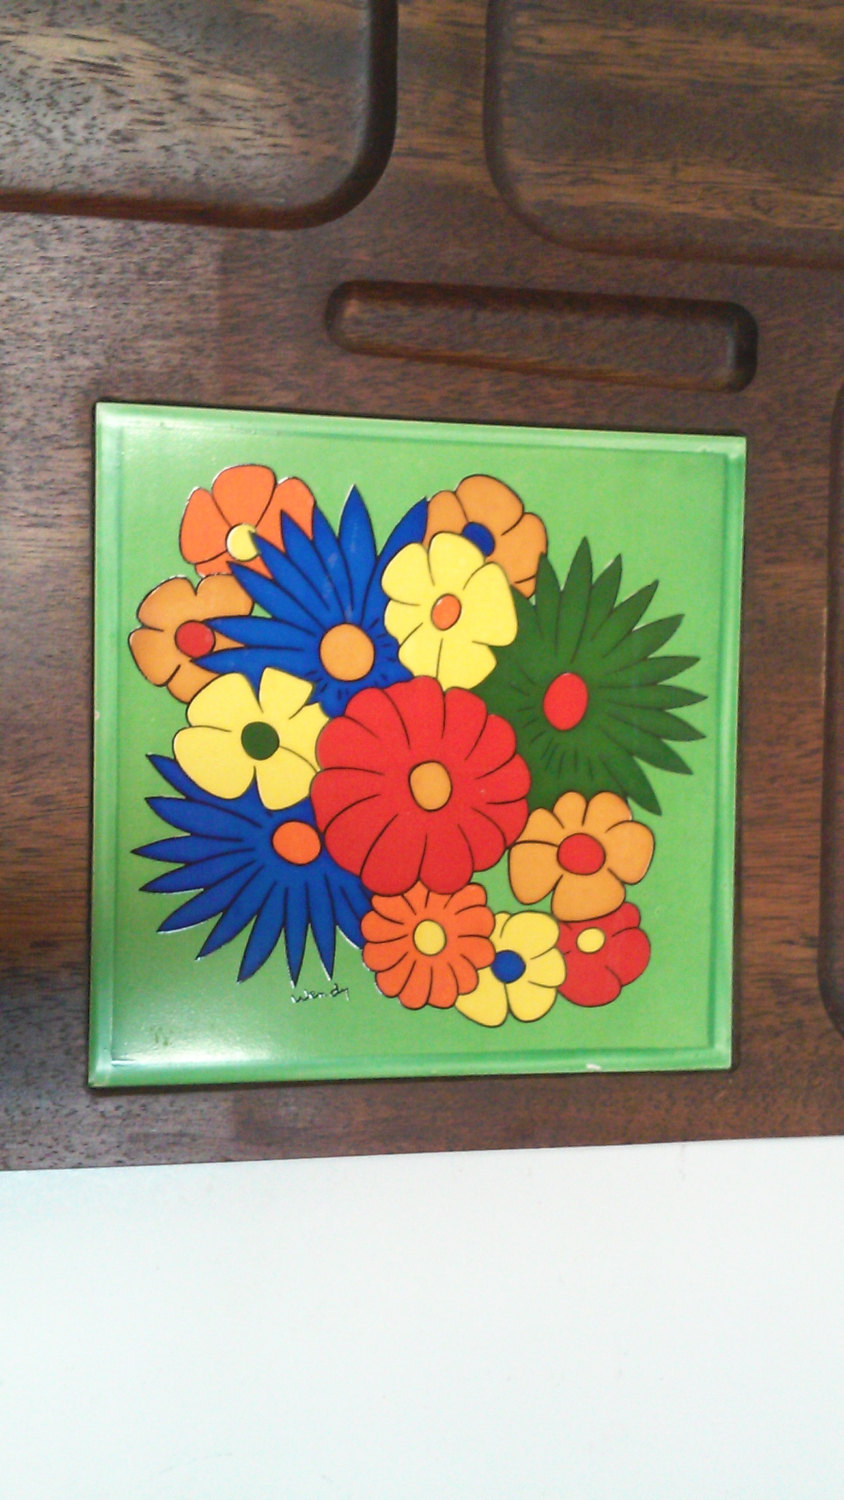 Vintage Mid-Century Hand Carved Wood Pop Art Serving Tray